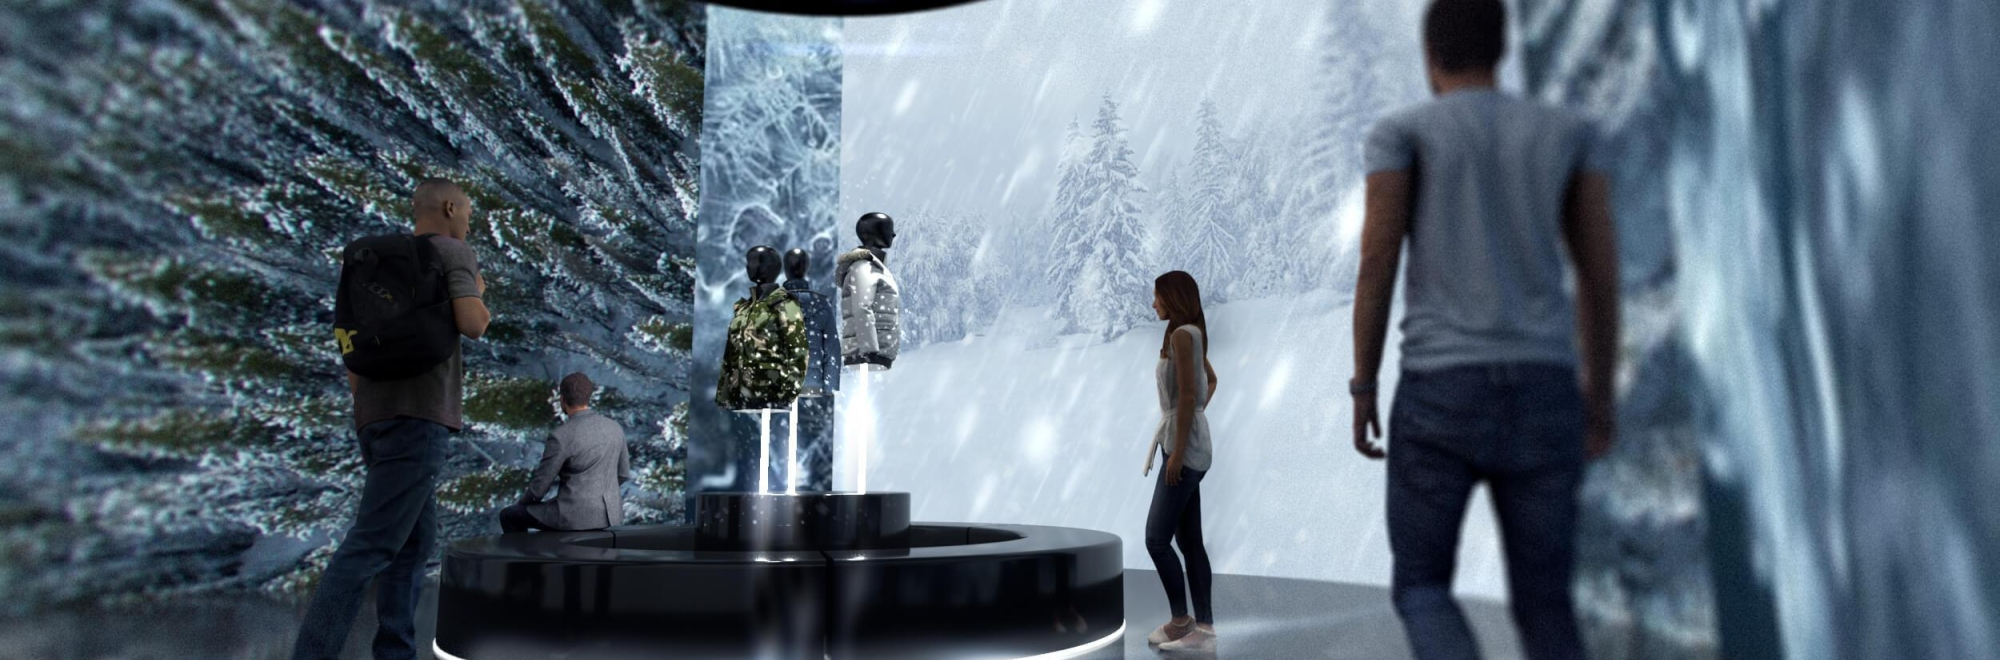 Canada Goose turns a regular shopping trip into an immersive experience